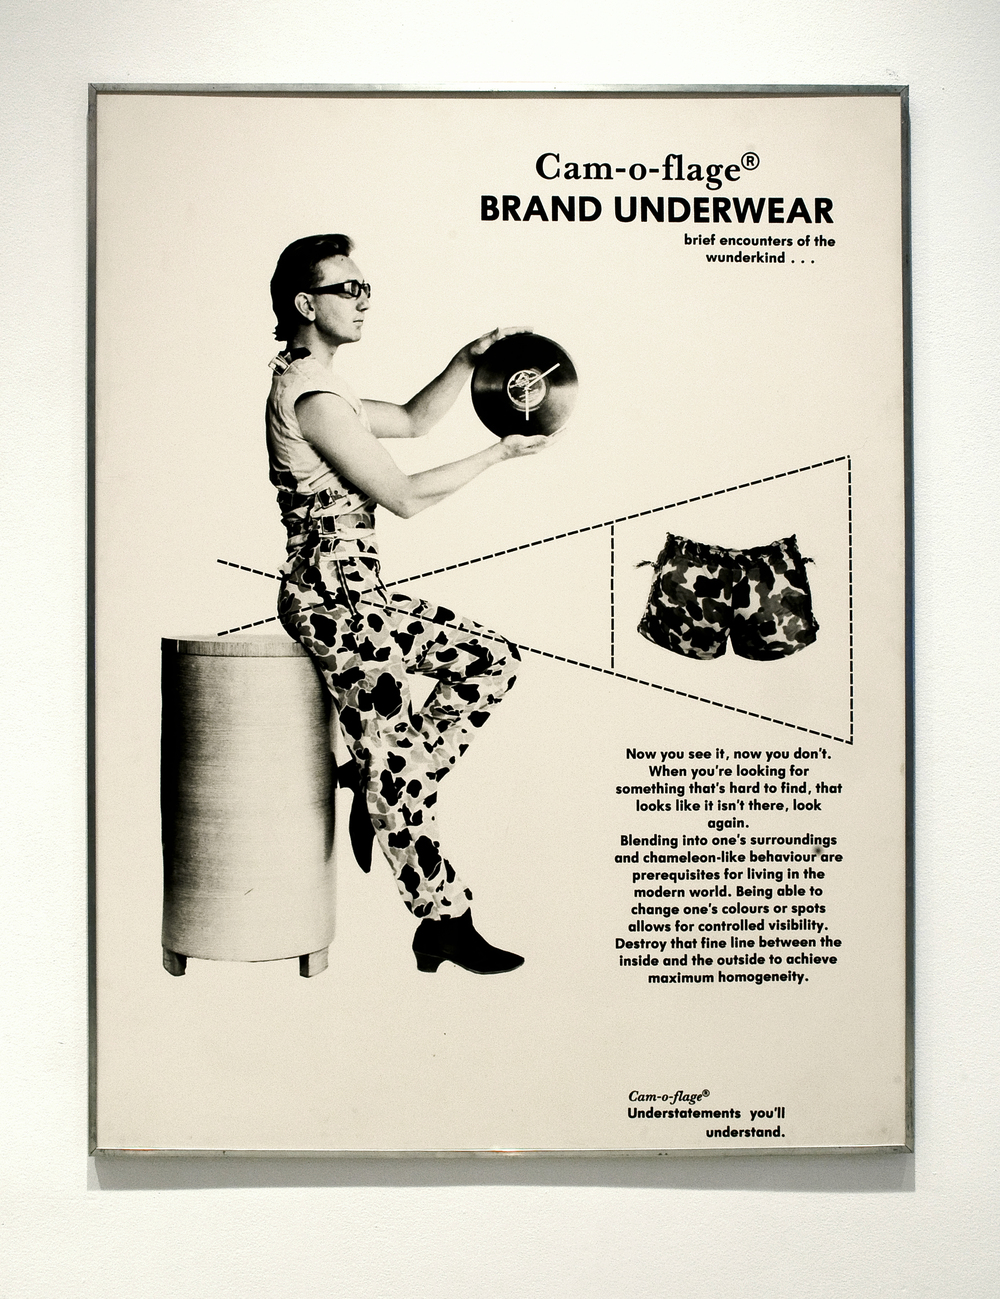 David Buchan,   Modern Fashions Suite:     Cam-o-flage Brand Underwear  , 1977.   Collection University of Lethbridge Art Gallery.